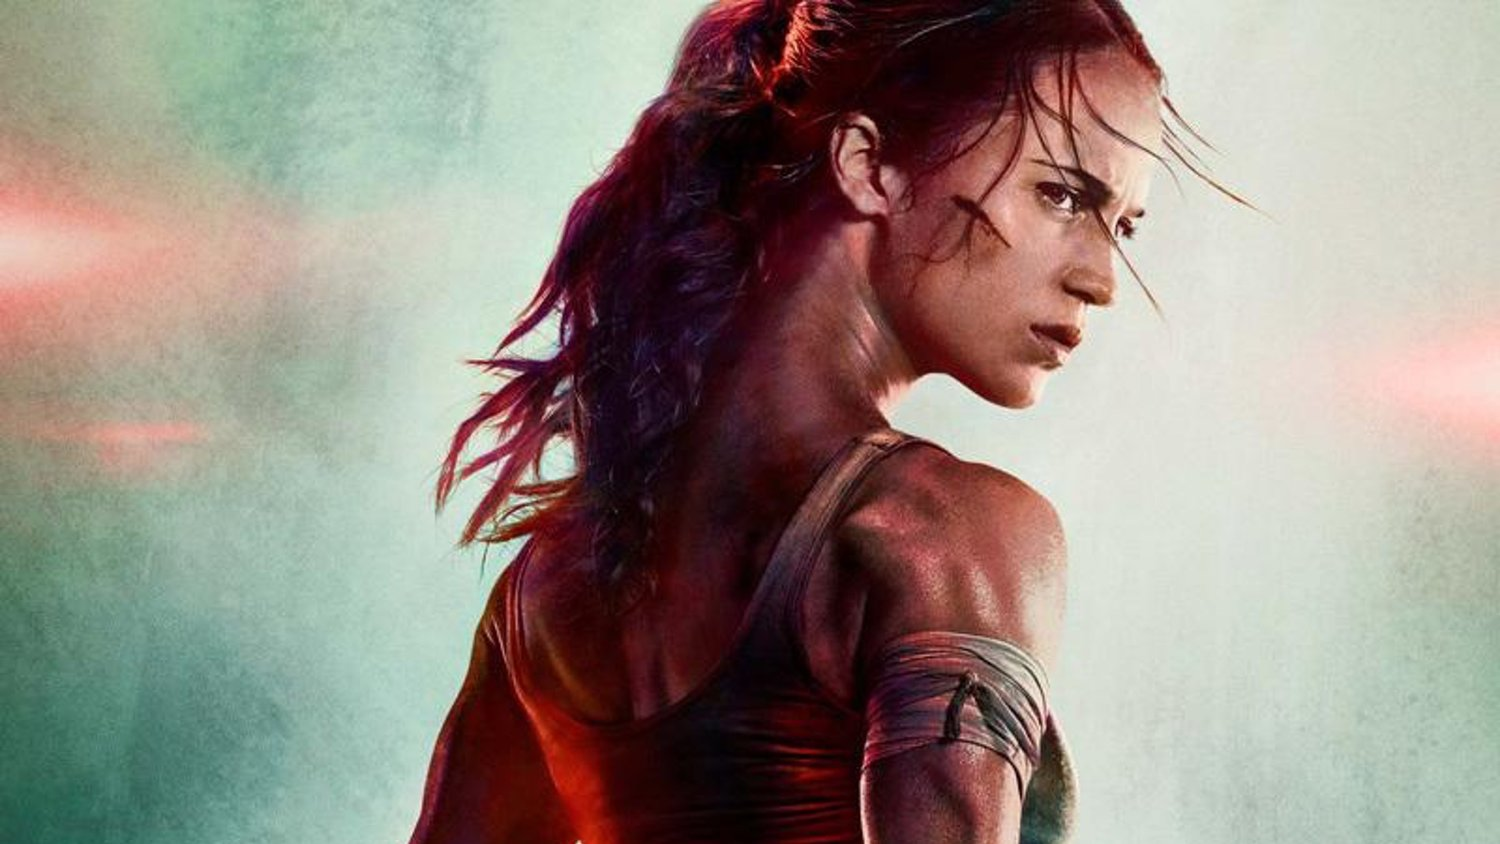 a040a3cf8507c8 Alicia Vikander Looks Badass as Lara Croft in First Poster and Teaser For TOMB  RAIDER